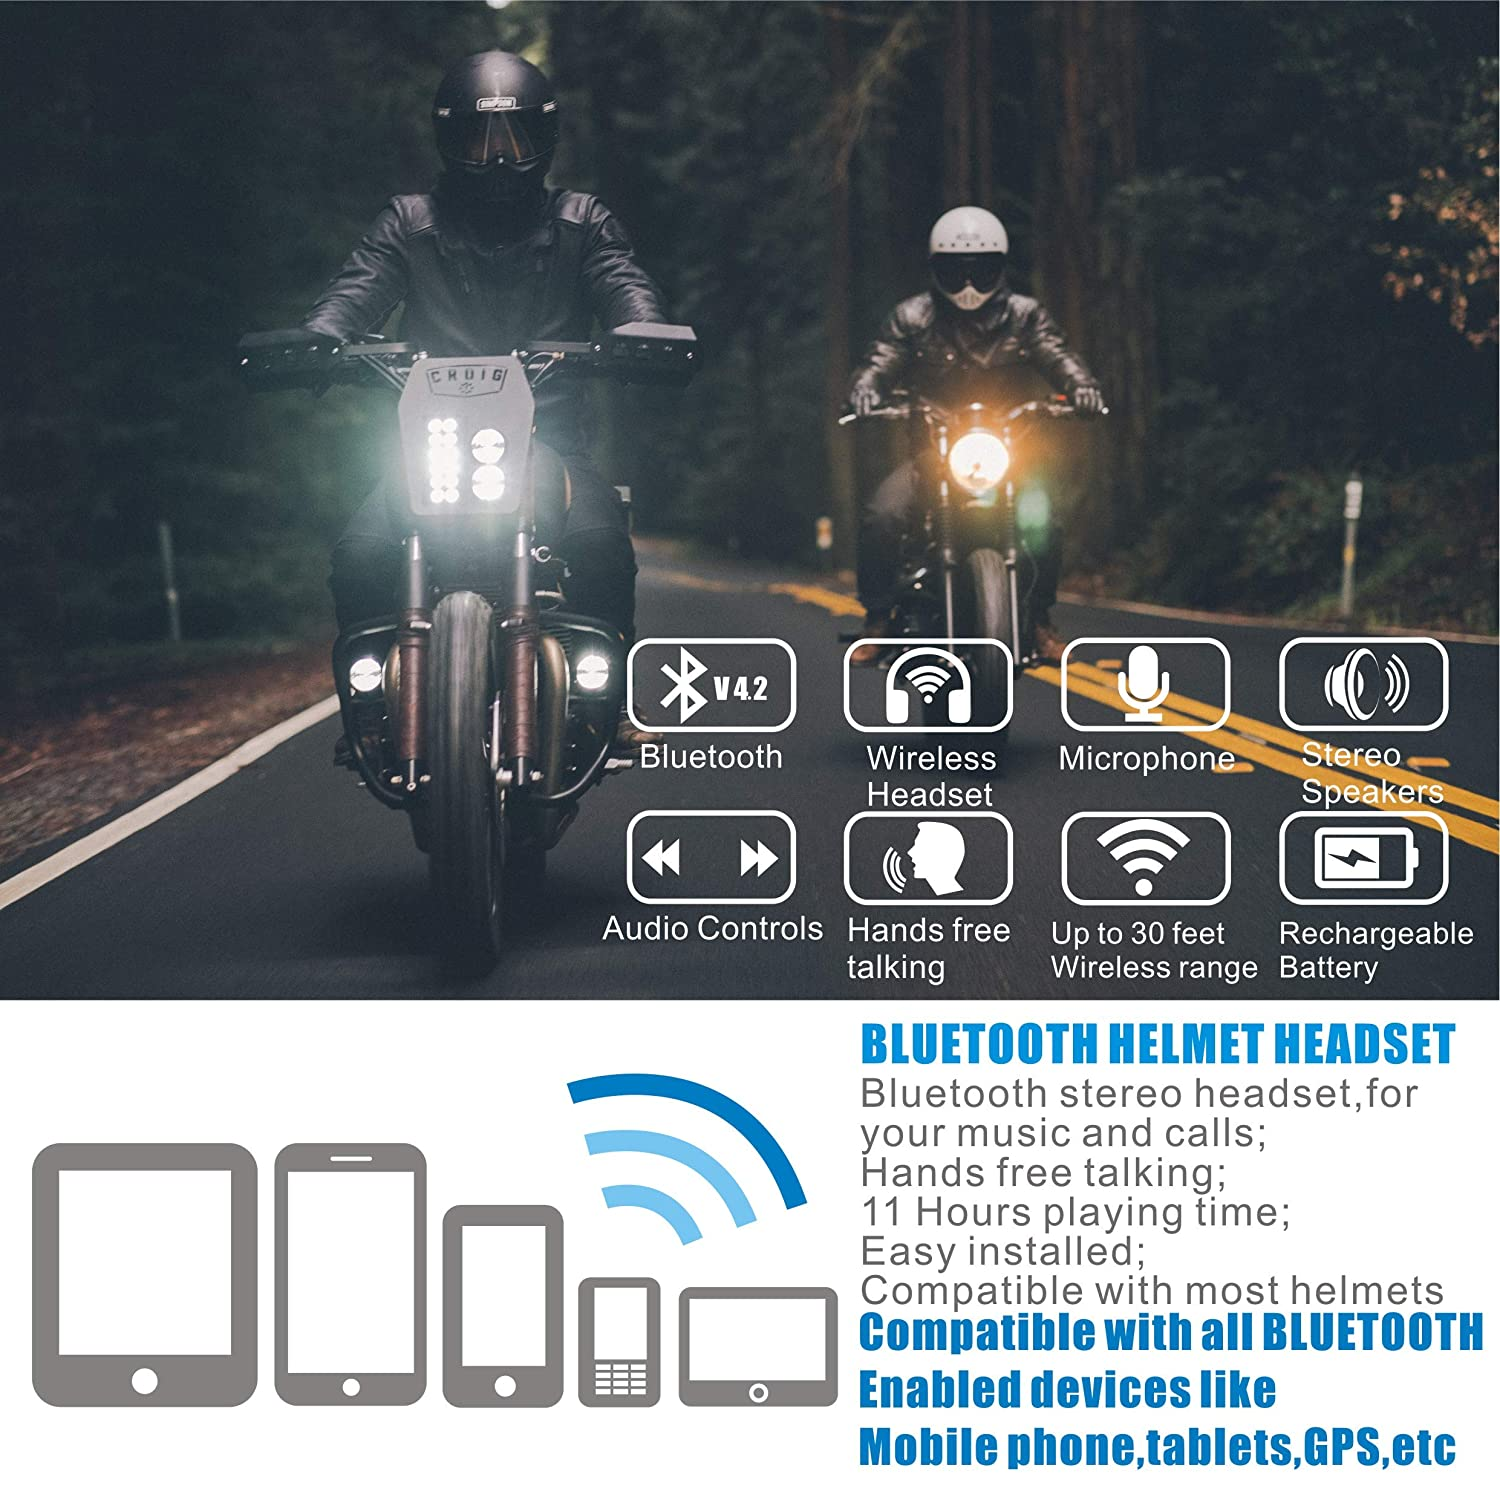 Motorcycle Bluetooth 4.2 Helmet Headset-Intercom Communication Systems Kit,with Automatic call answering switch for Motorbike Skiing